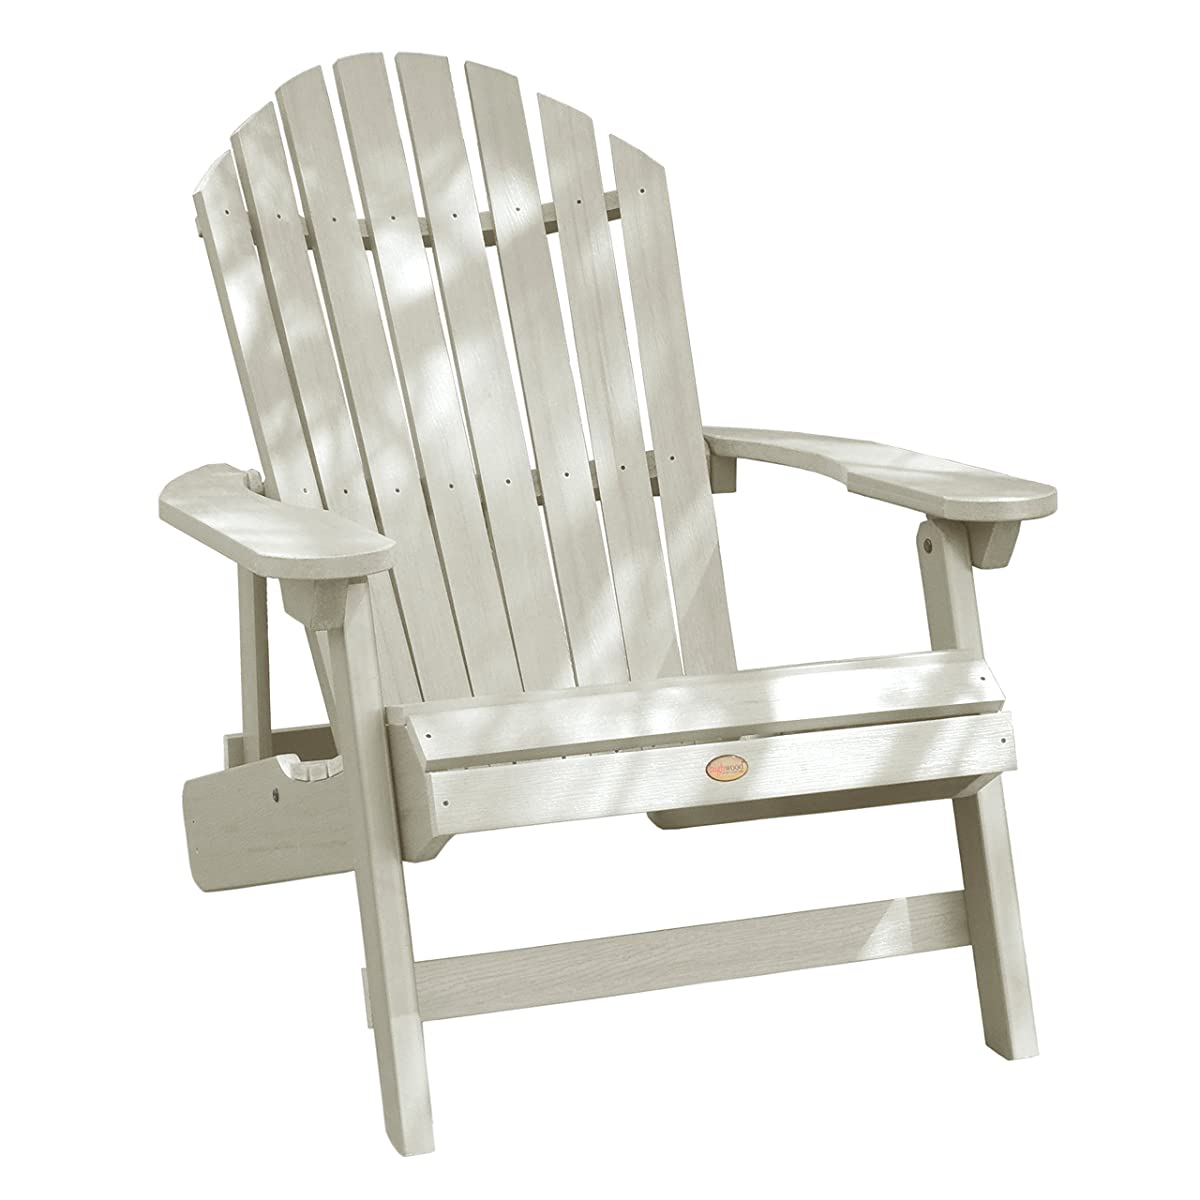 Highwood King Hamilton Folding and Reclining Adirondack Chair, Whitewash